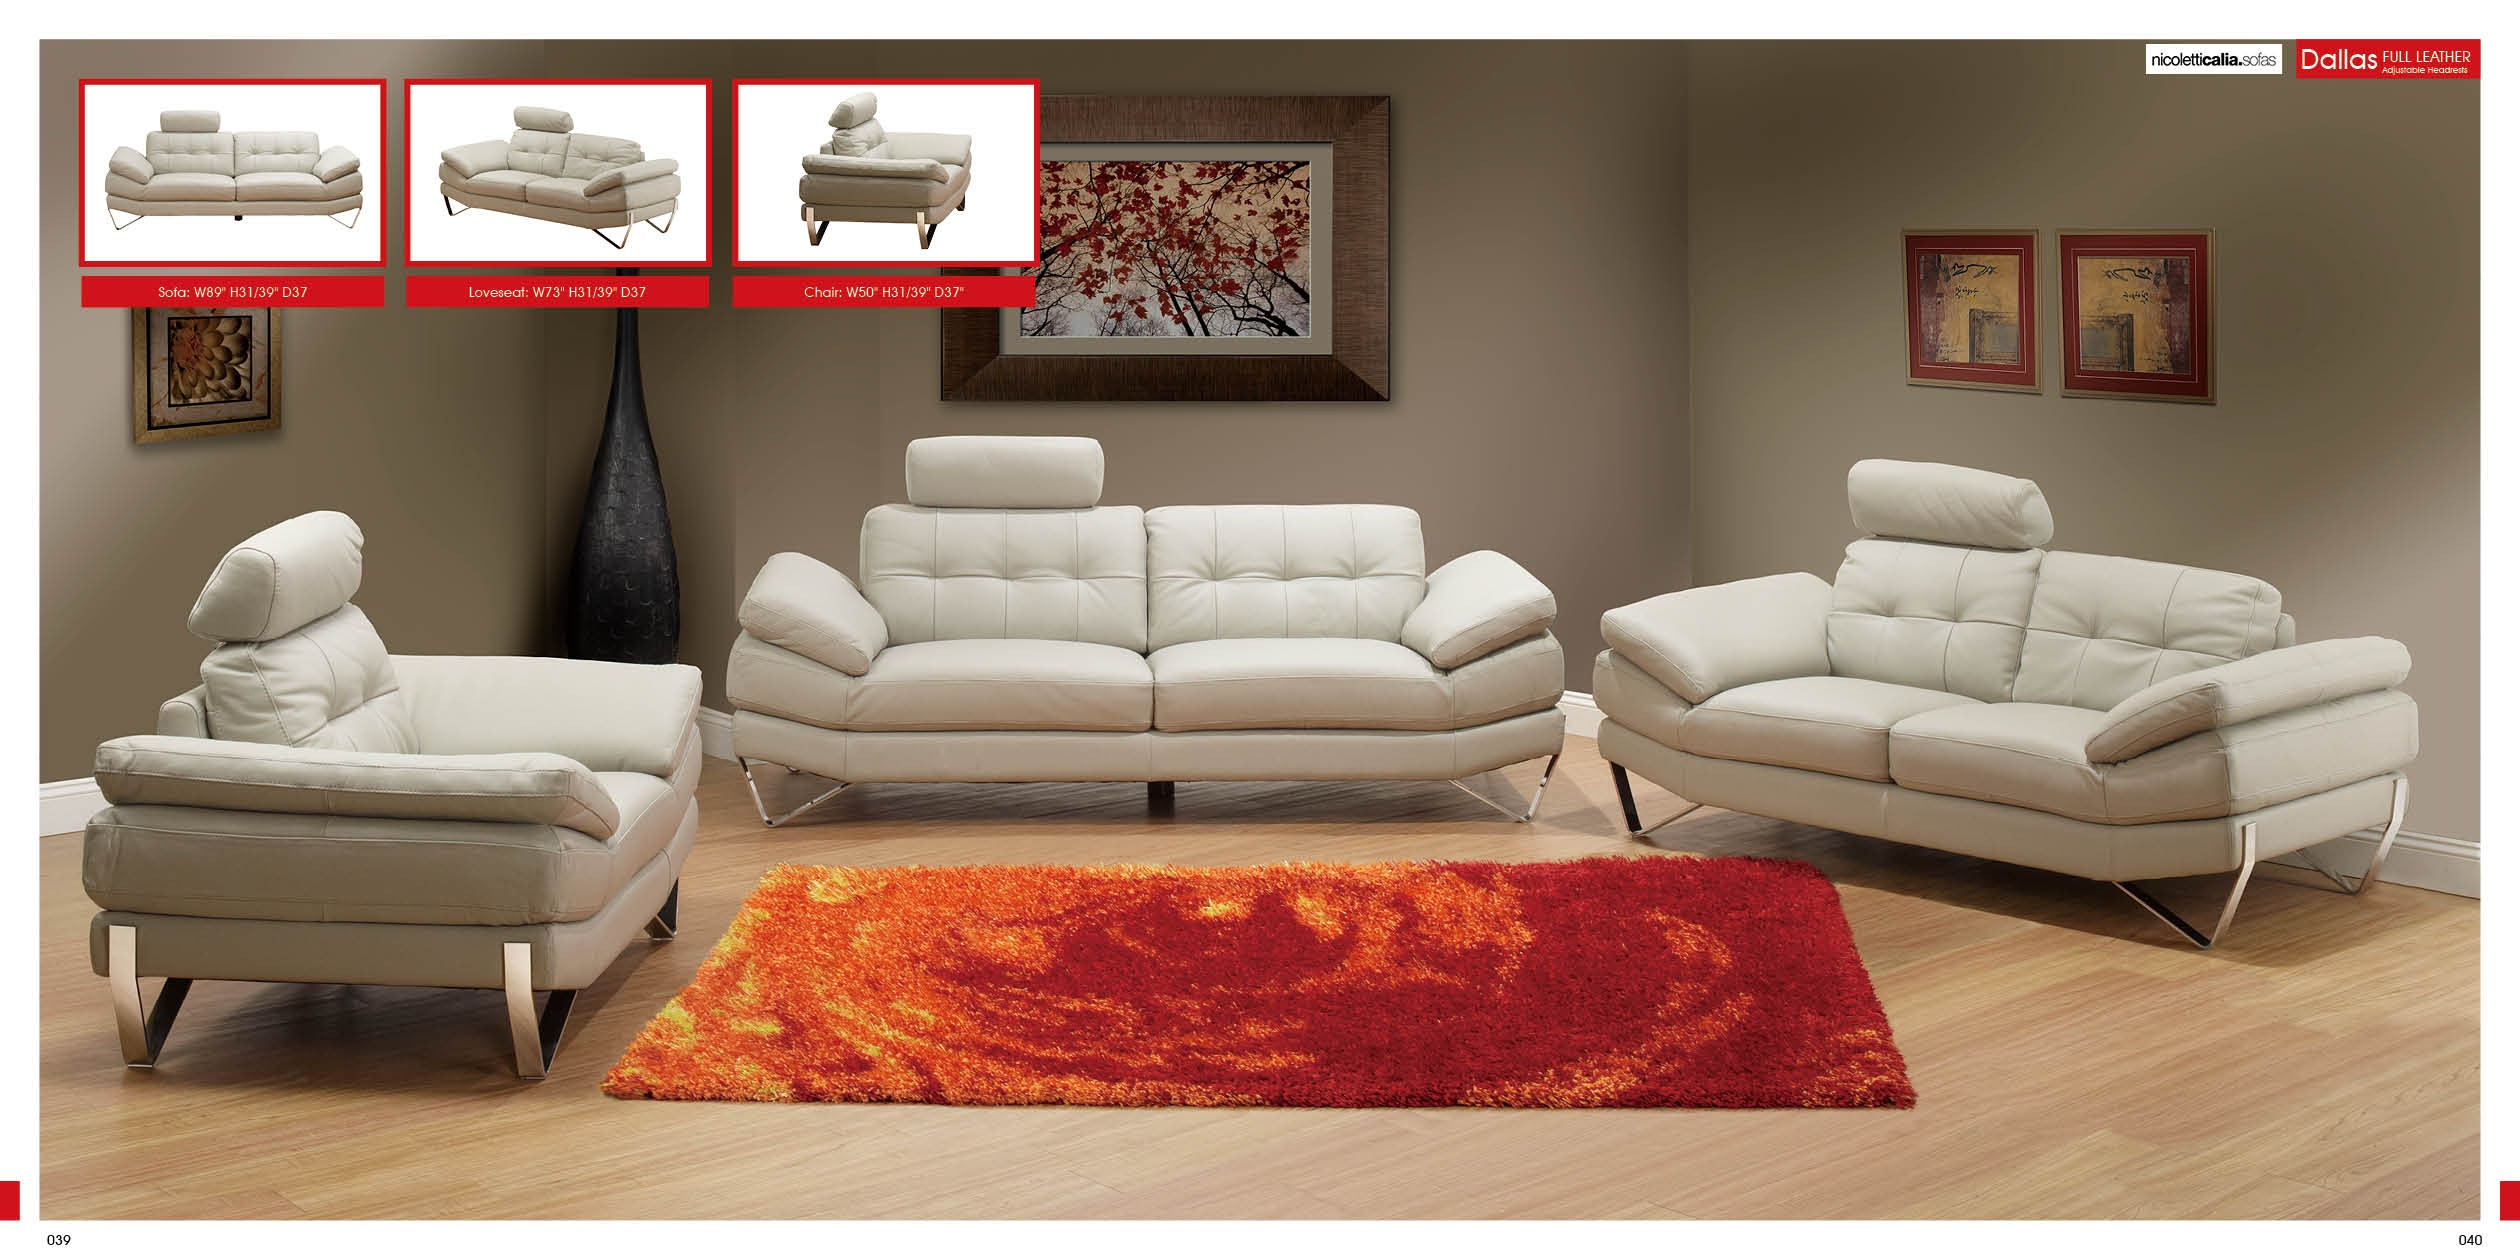 Dallas sofa set by nicoletti